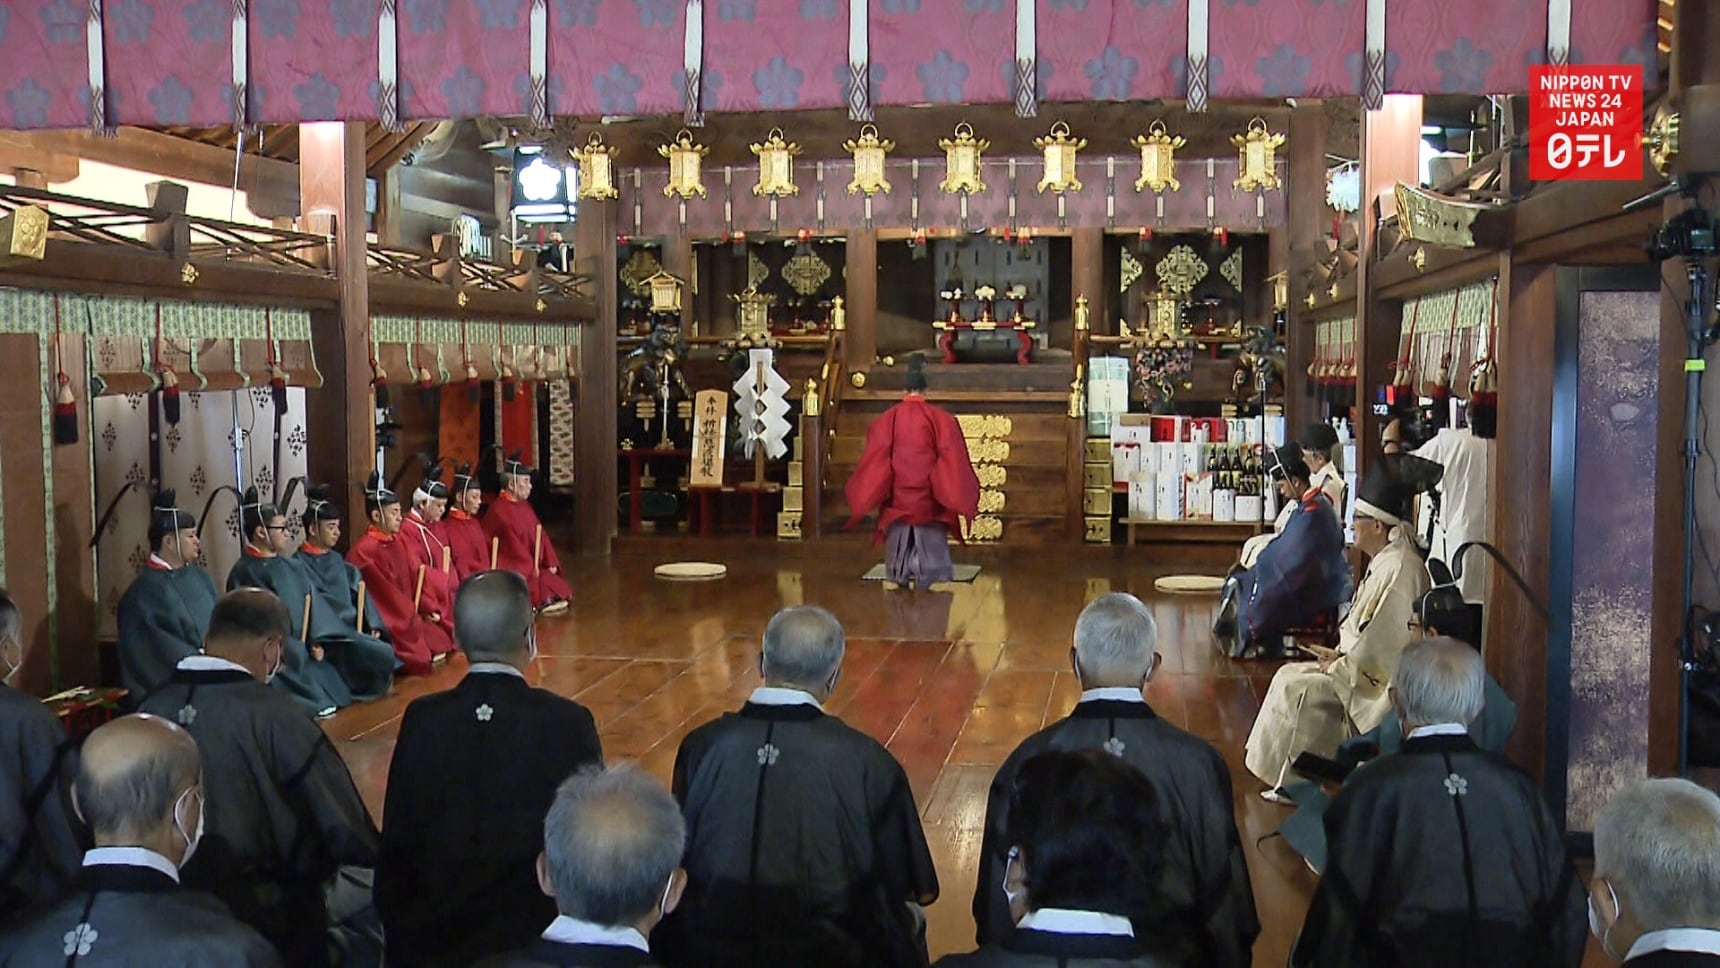 Private Shinto Ritual Streamed to Viewers